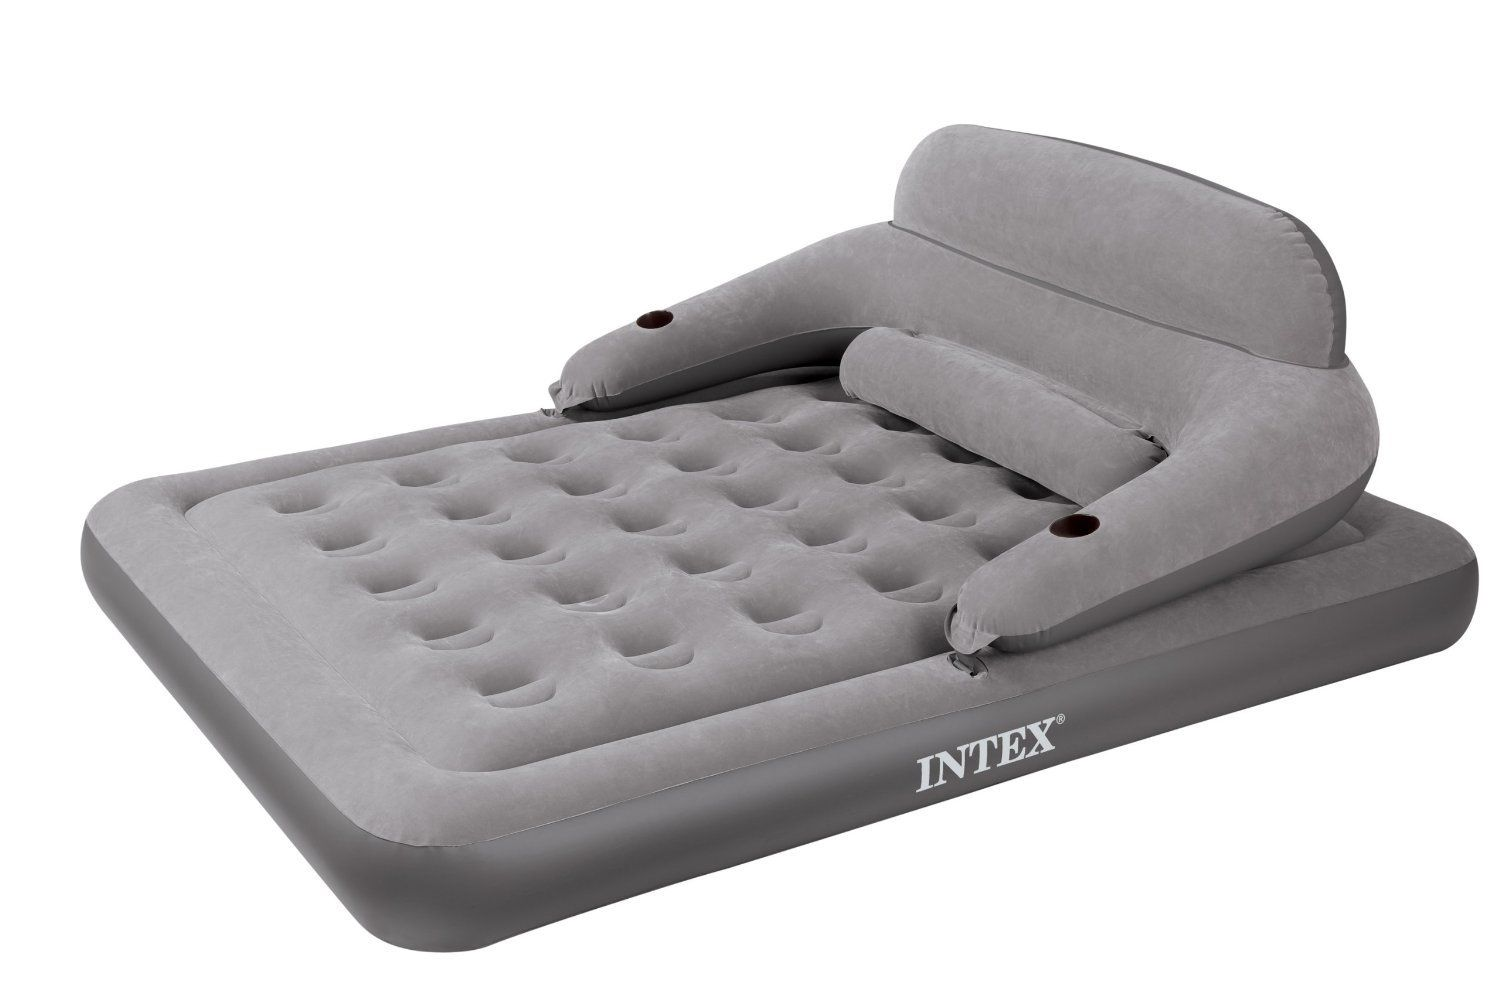 Intex Convertible Lounge Queen Bed Kit Queen Sized Airbed That Converts Into A Relaxing Lounge Chair Comfort Backrest Buc Air Mattress Camping Queen Beds Bed